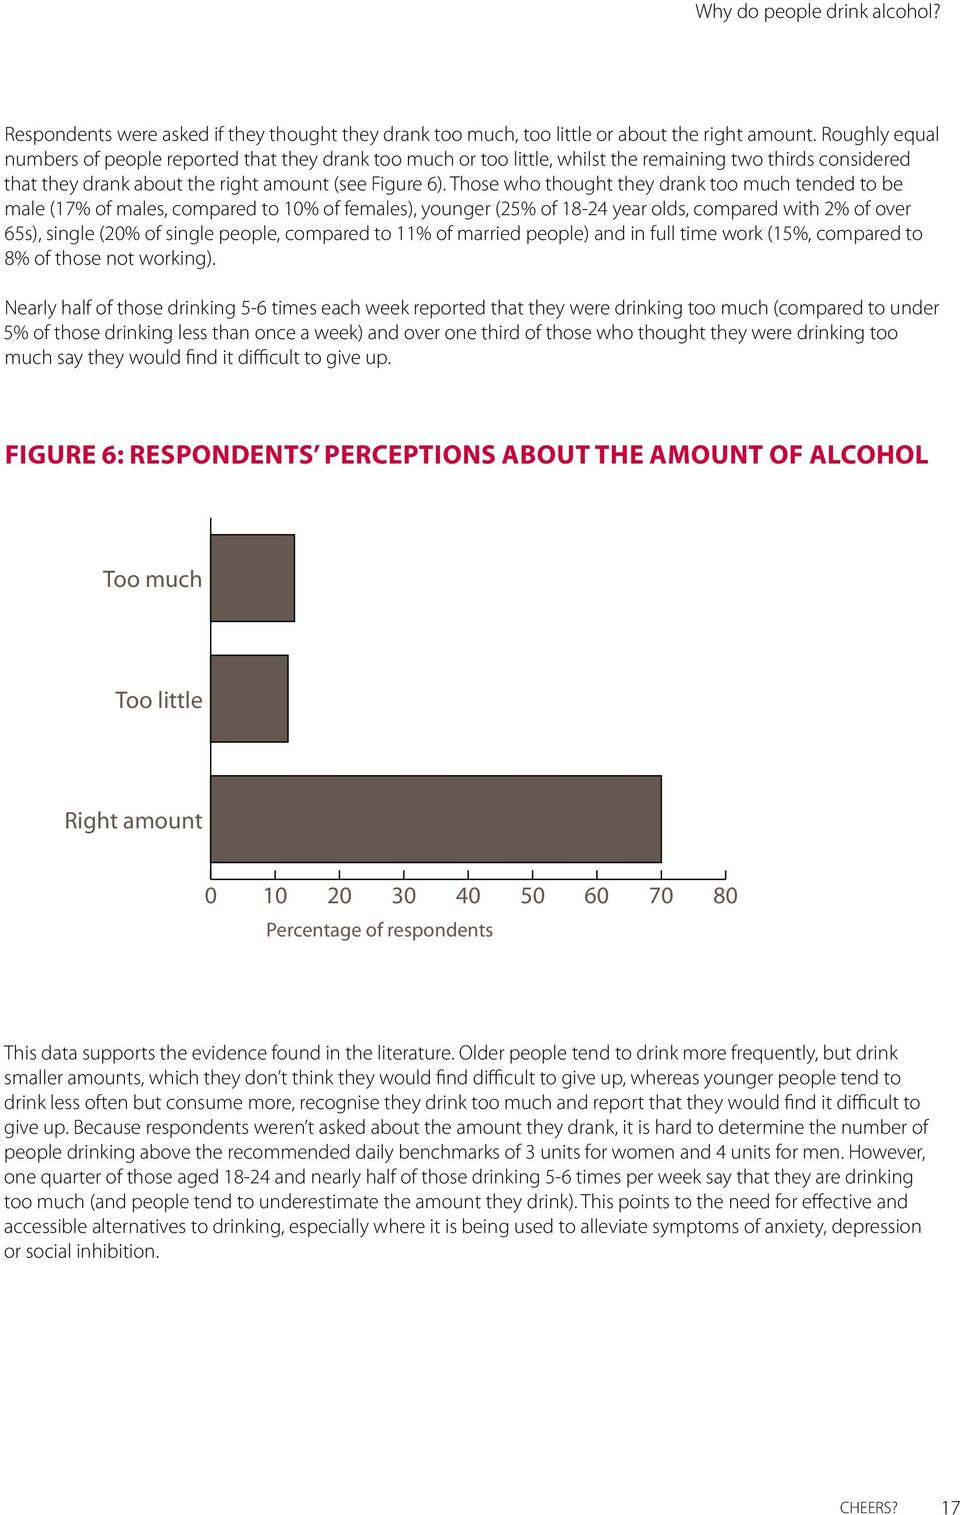 Those who thought they drank too much tended to be male (17% of males, compared to 10% of females), younger (25% of 18-24 year olds, compared with 2% of over 65s), single (20% of single people,